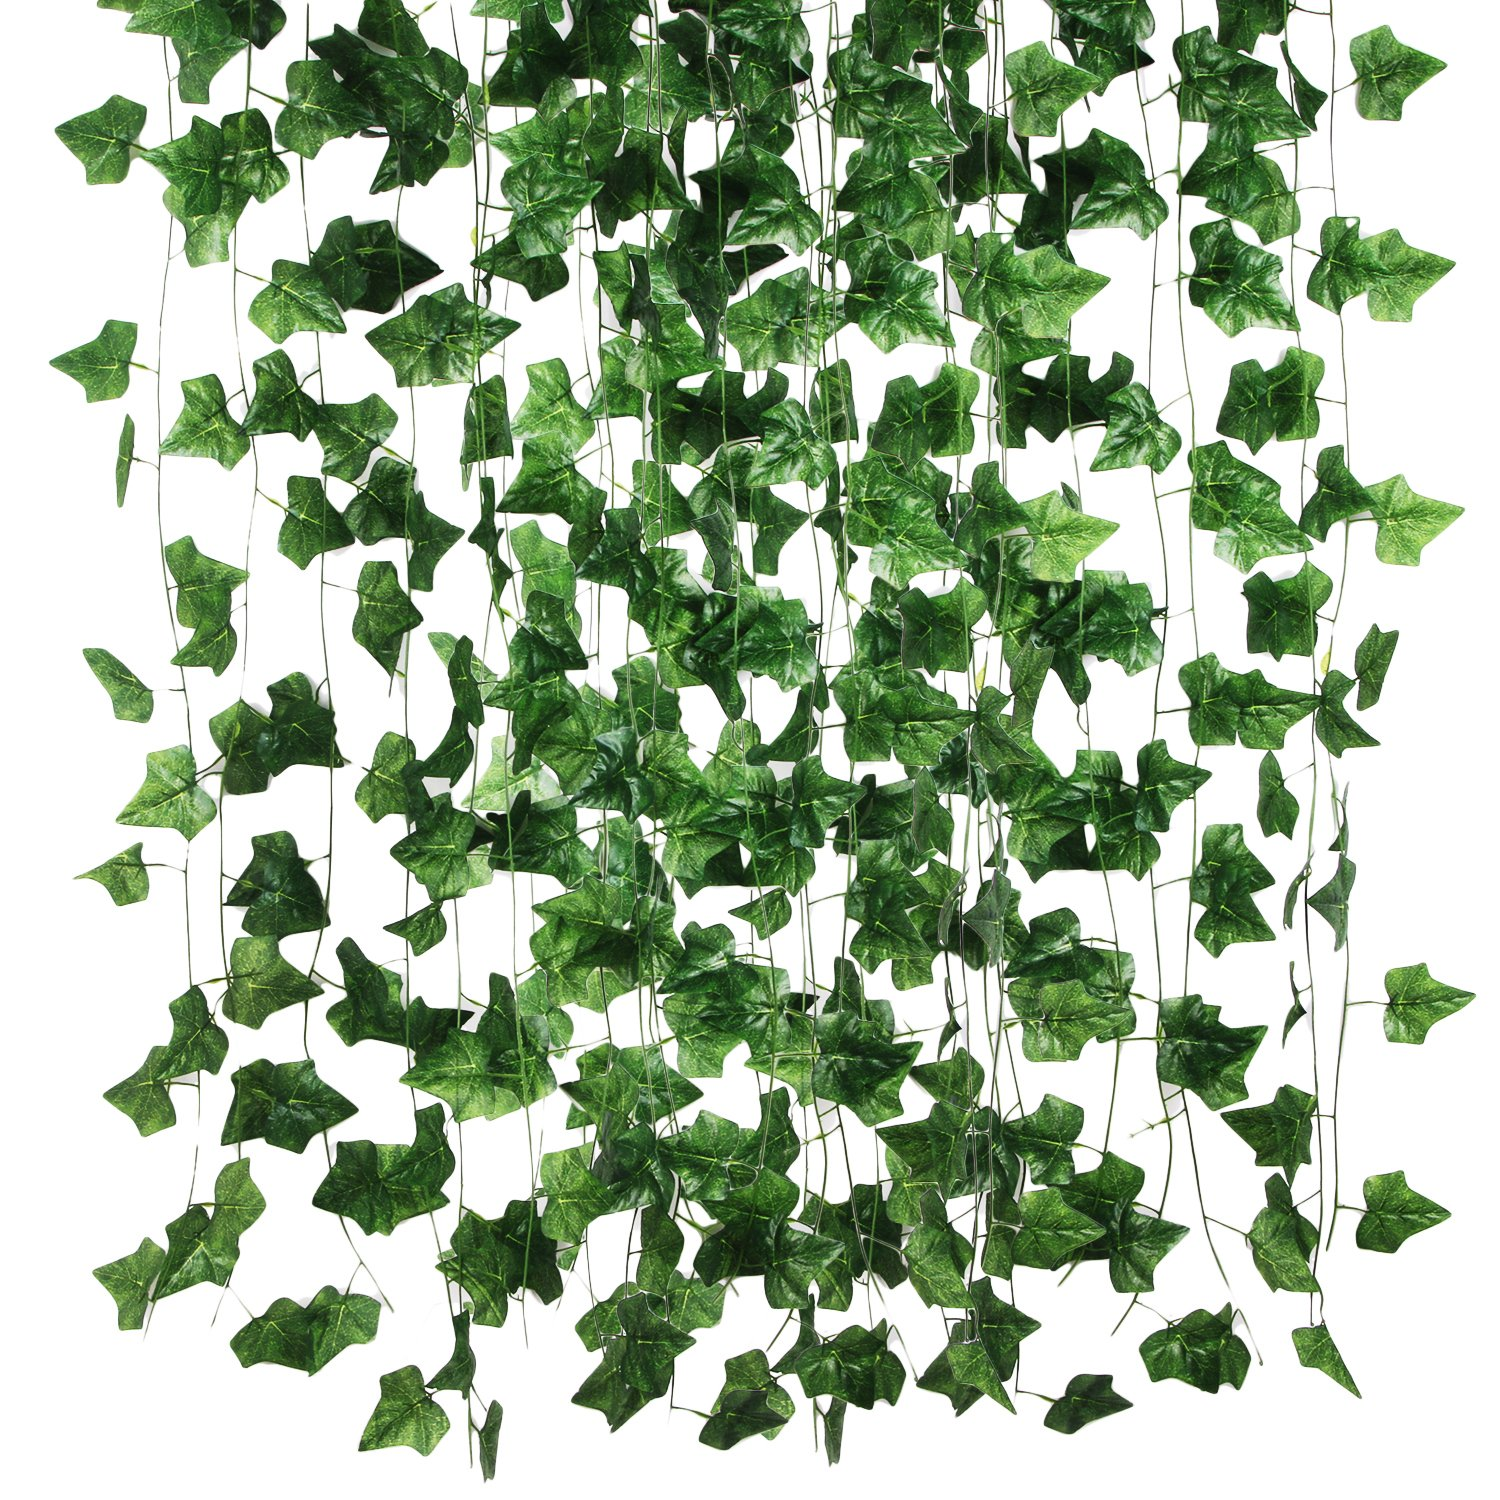 Hecaty 87 Feet-12 Pack Artificial Ivy Large Leaf Garland Plants Vine for Hanging Wedding Garland Fake Foliage Flowers Home Kitchen Garden Office Wedding Wall Decor(Large Size)